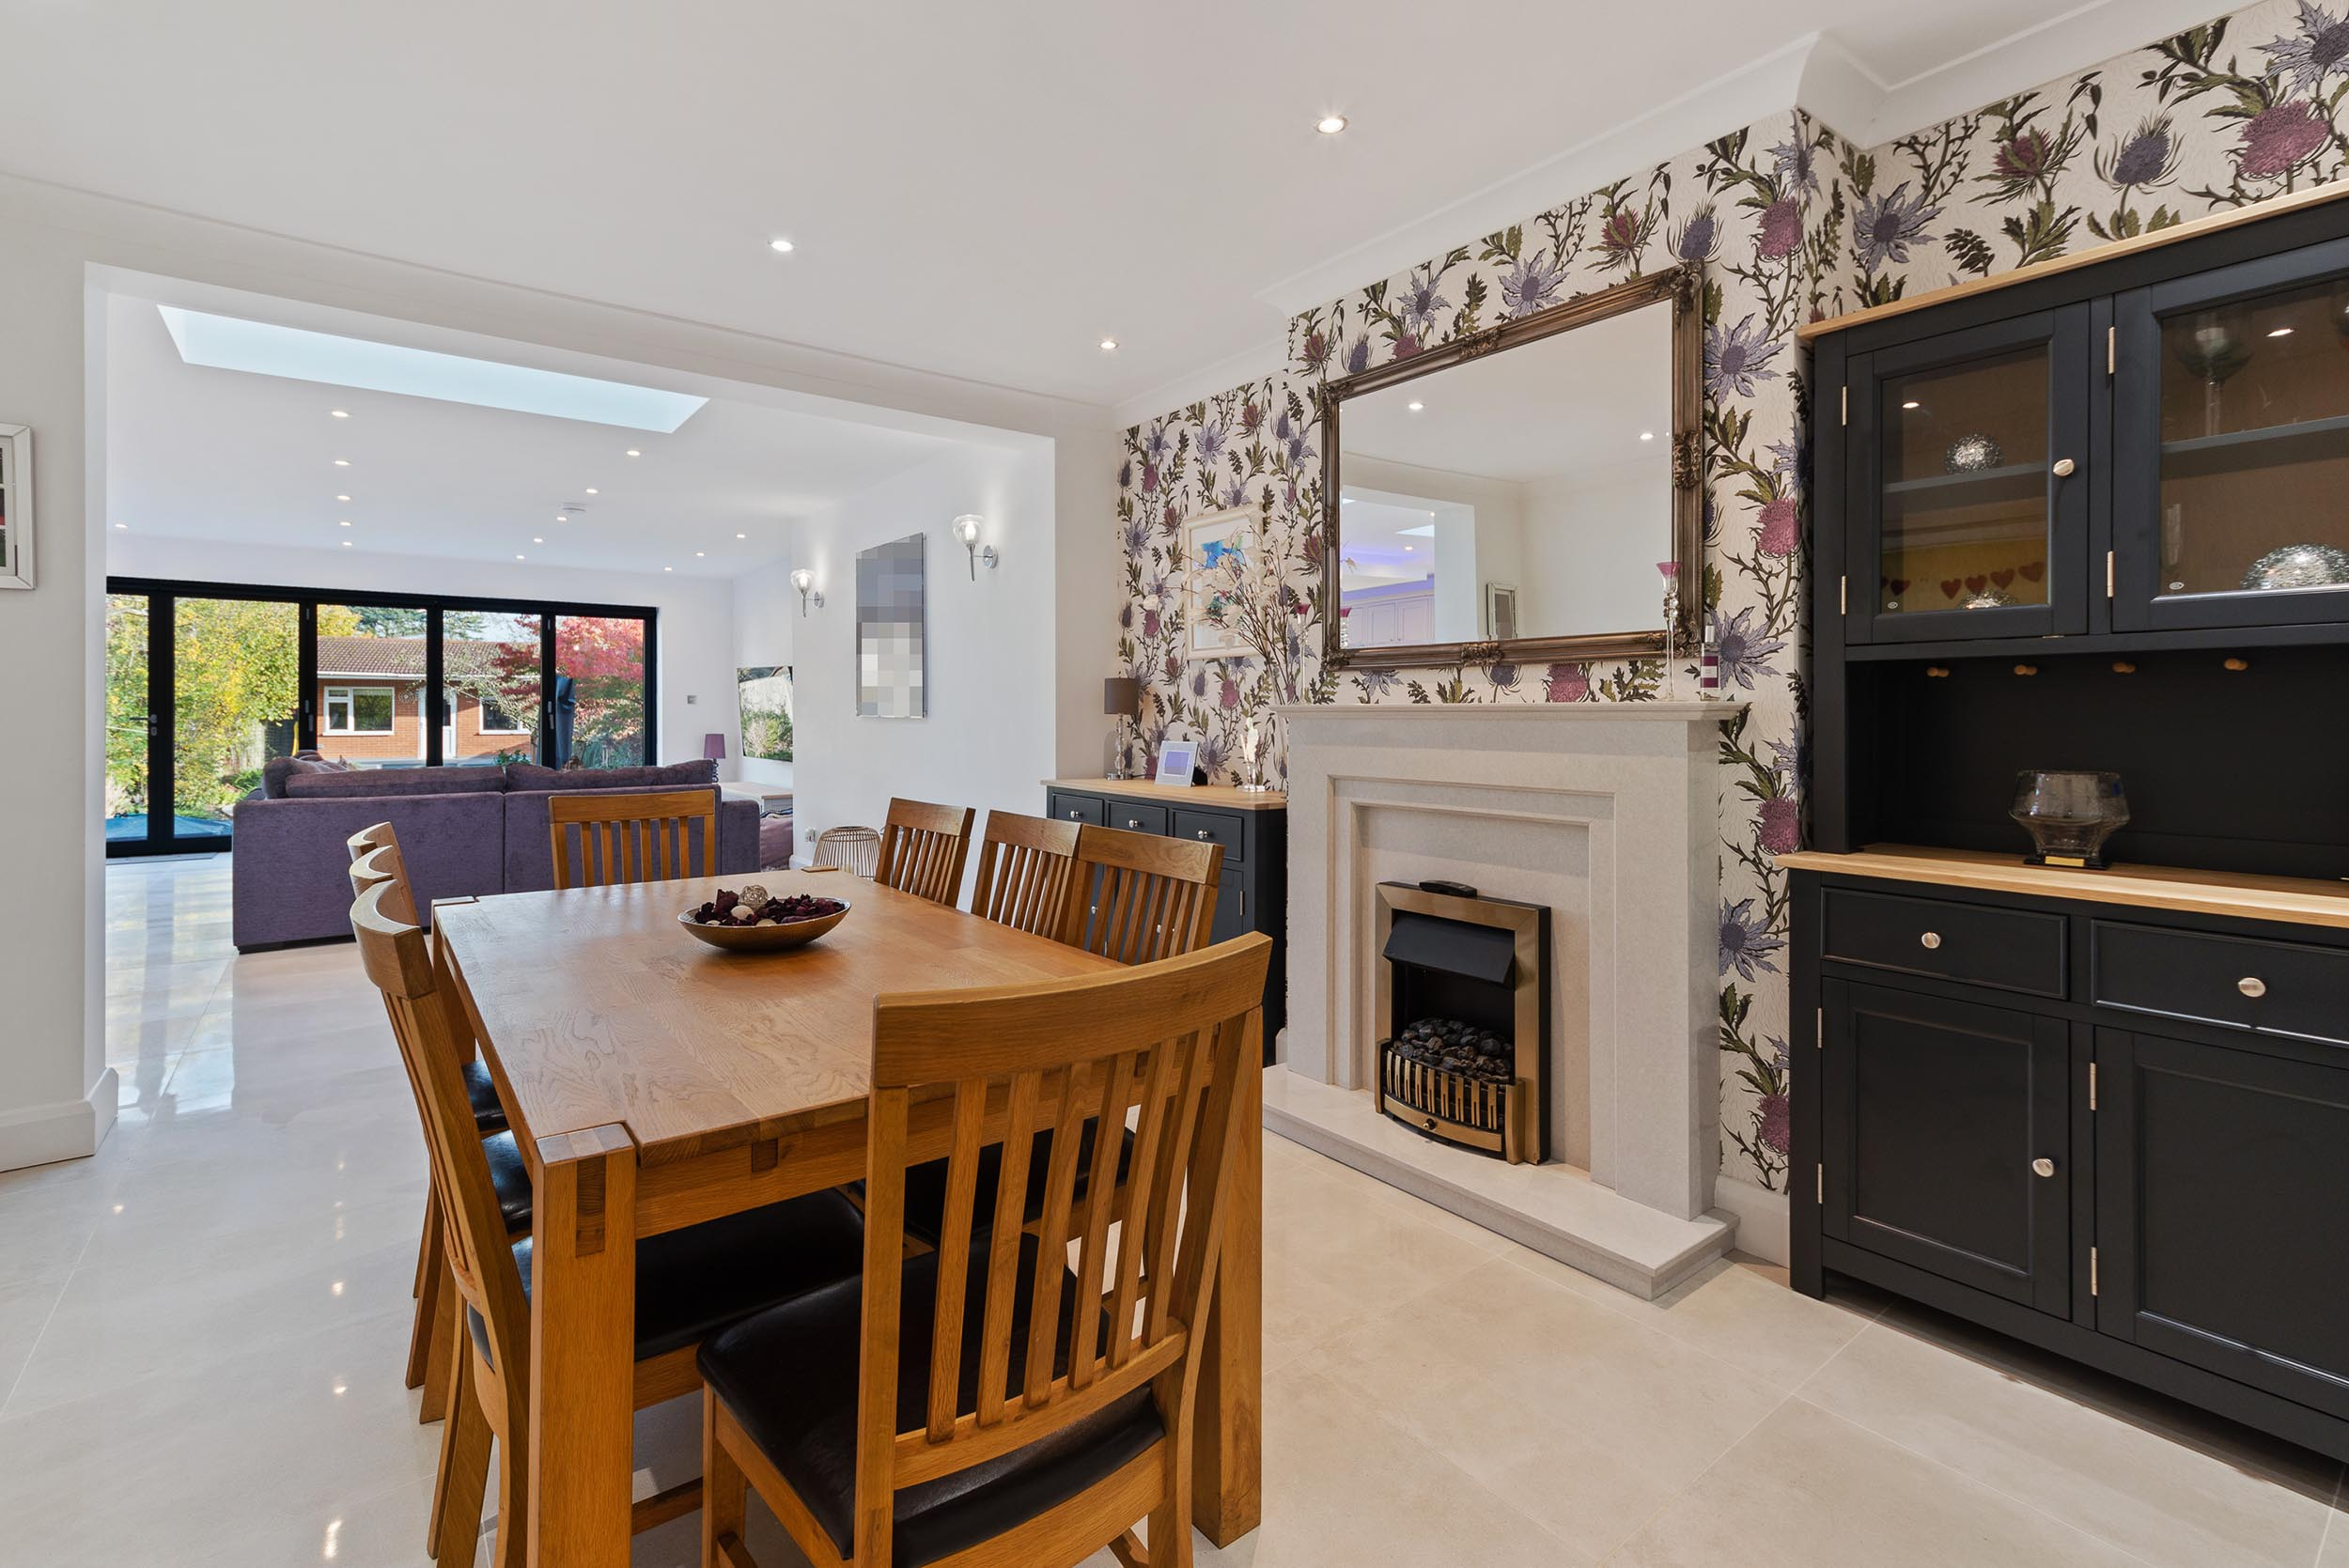 61-and-63-Wades-Hill-N21-1BD-Small-Res-4